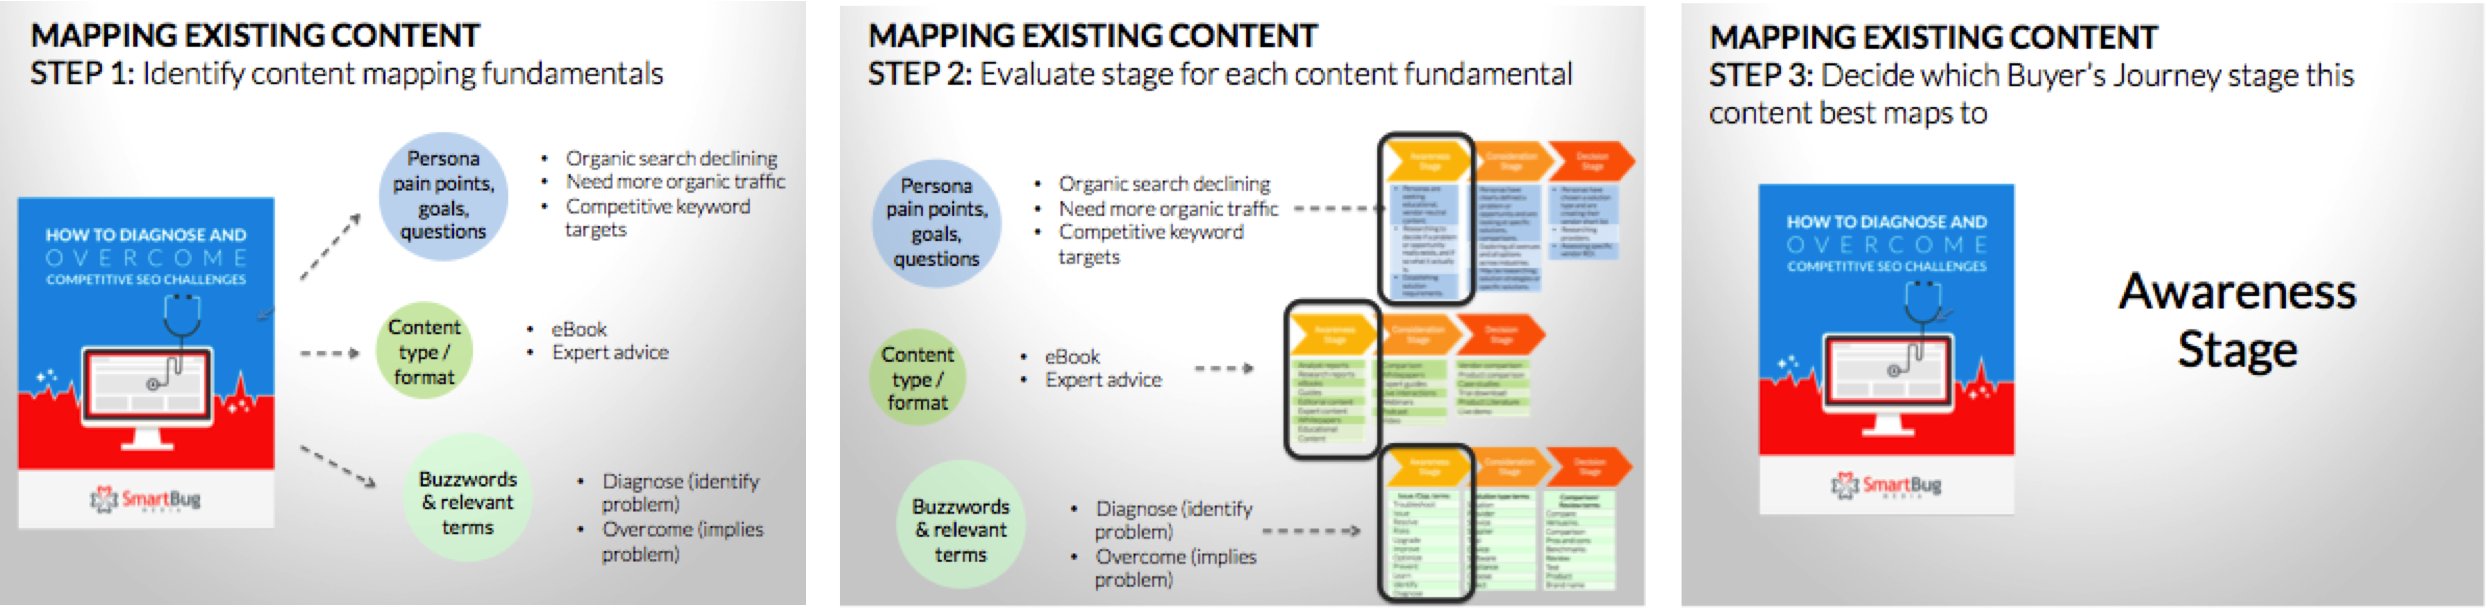 mapping_content_to_buyers_journey_example.png